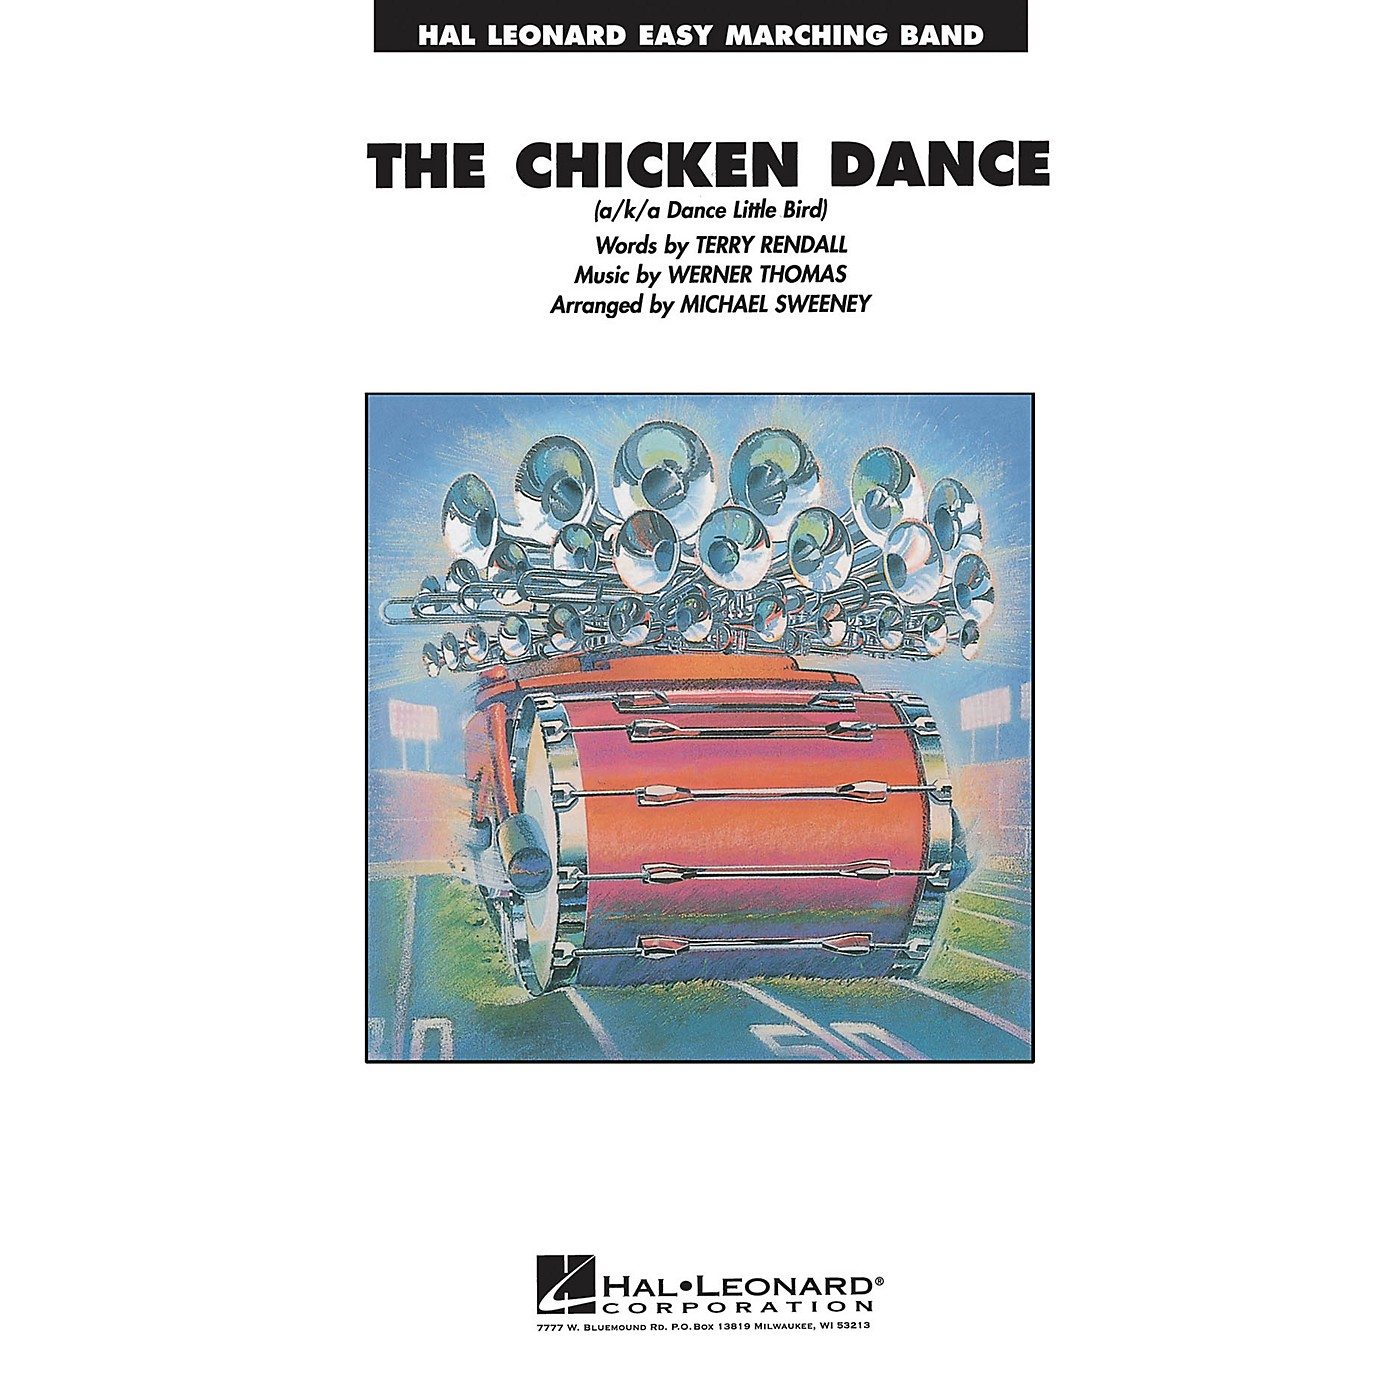 Hal Leonard The Chicken Dance Marching Band Level 2-3 Arranged by Michael Sweeney thumbnail